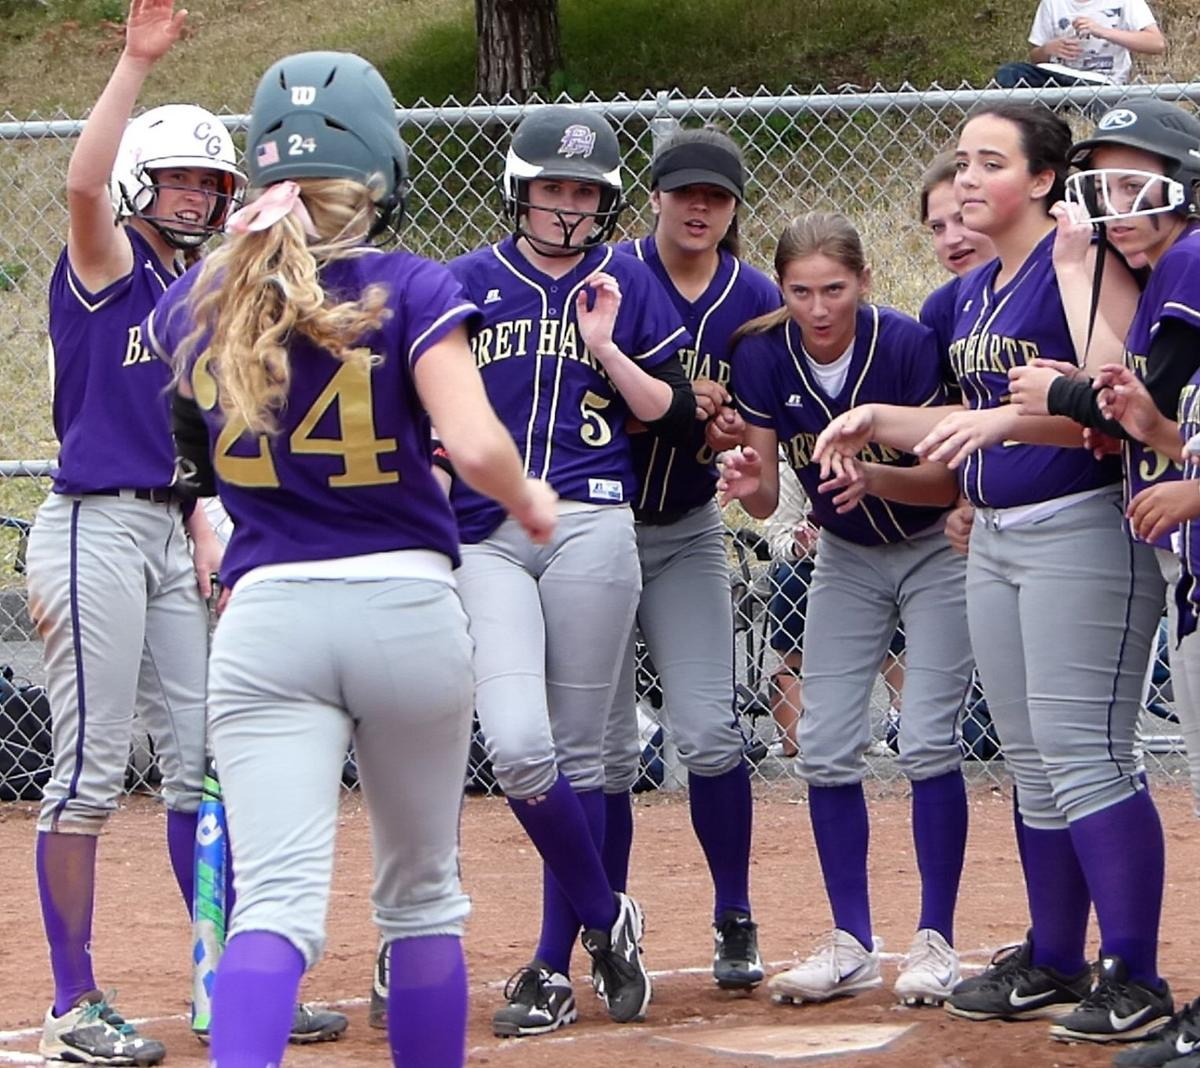 Bret Harte softball girls score walk-off win against Bears ...